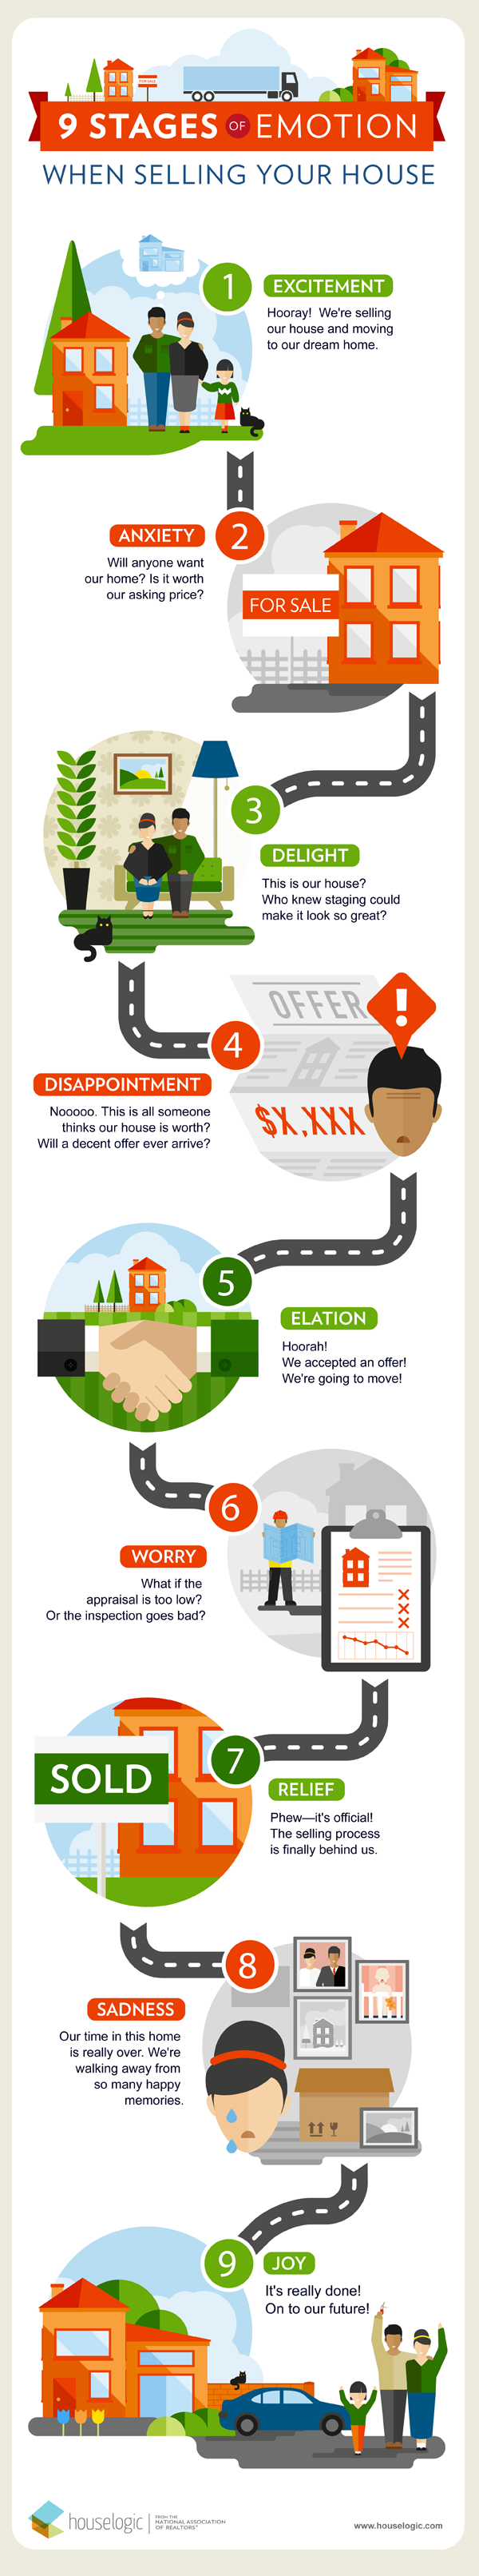 Infographic - Stages of emotion when selling your house